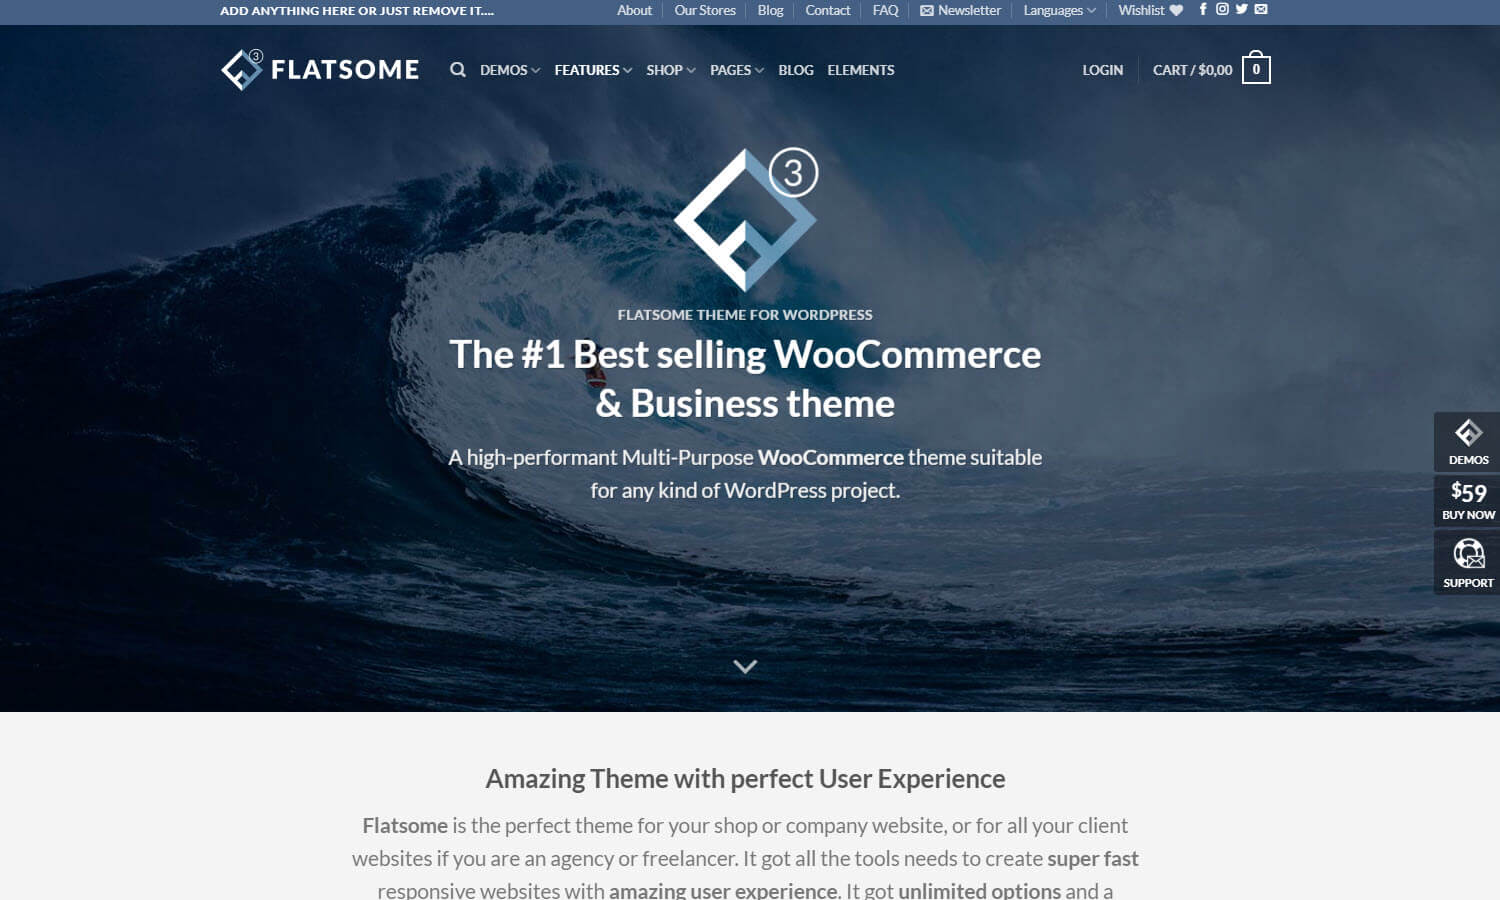 Flatsome screenshot